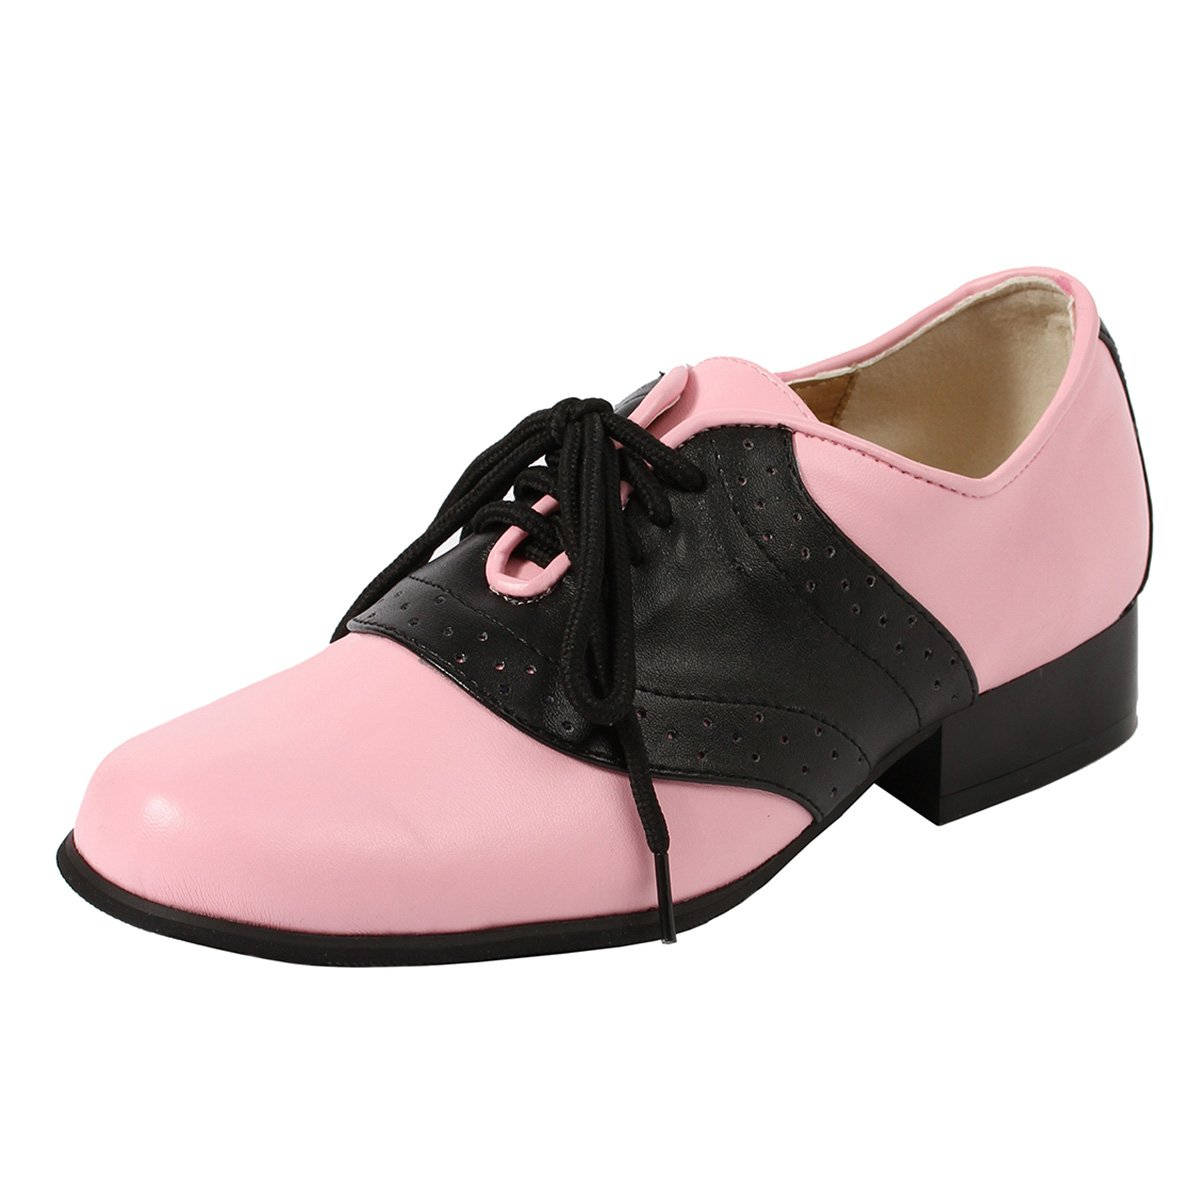 Women's Oxford Saddle Shoes 1 inch Heel Lace up with Twotone Pink Black Size: 10